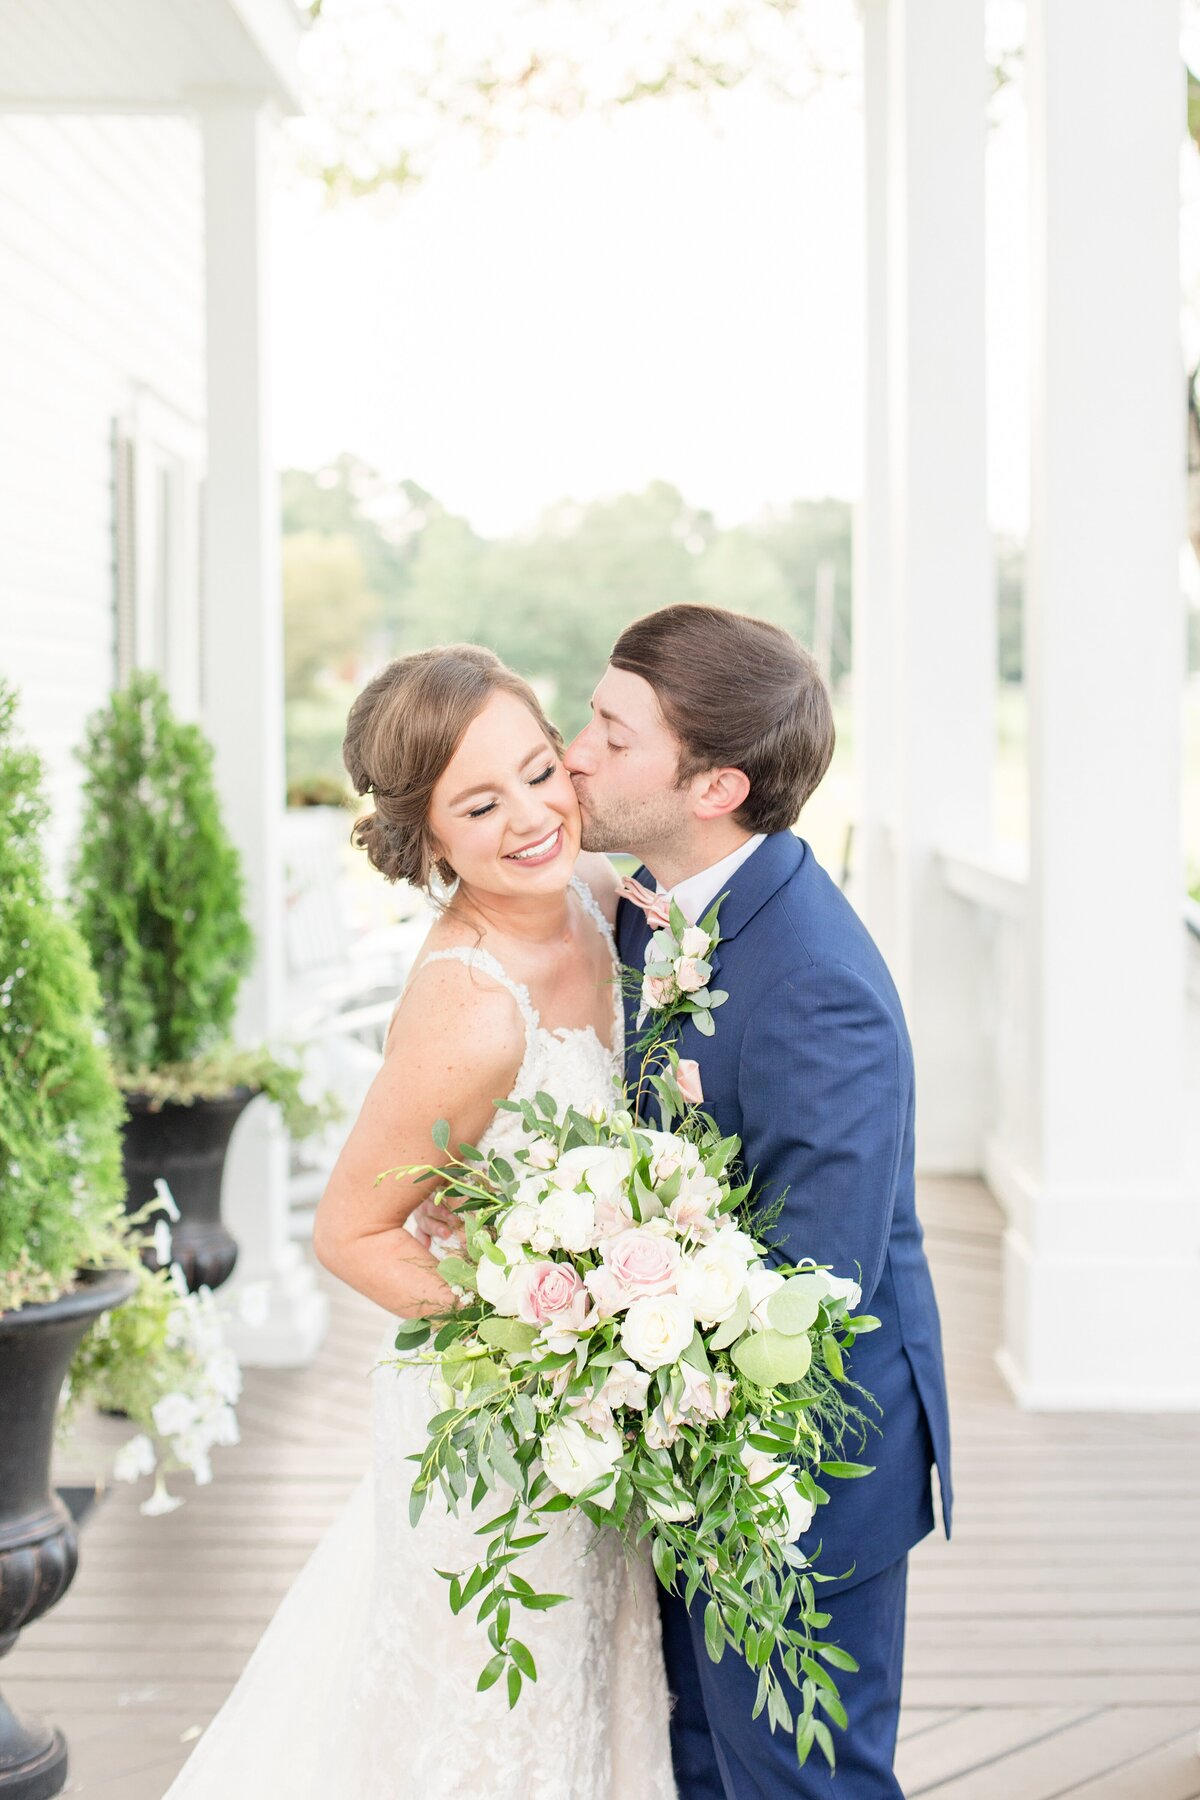 Wedding Gallery - A&J Birmingham, Alabama Wedding & Engagement Photographers - Katie & Alec Photography 74